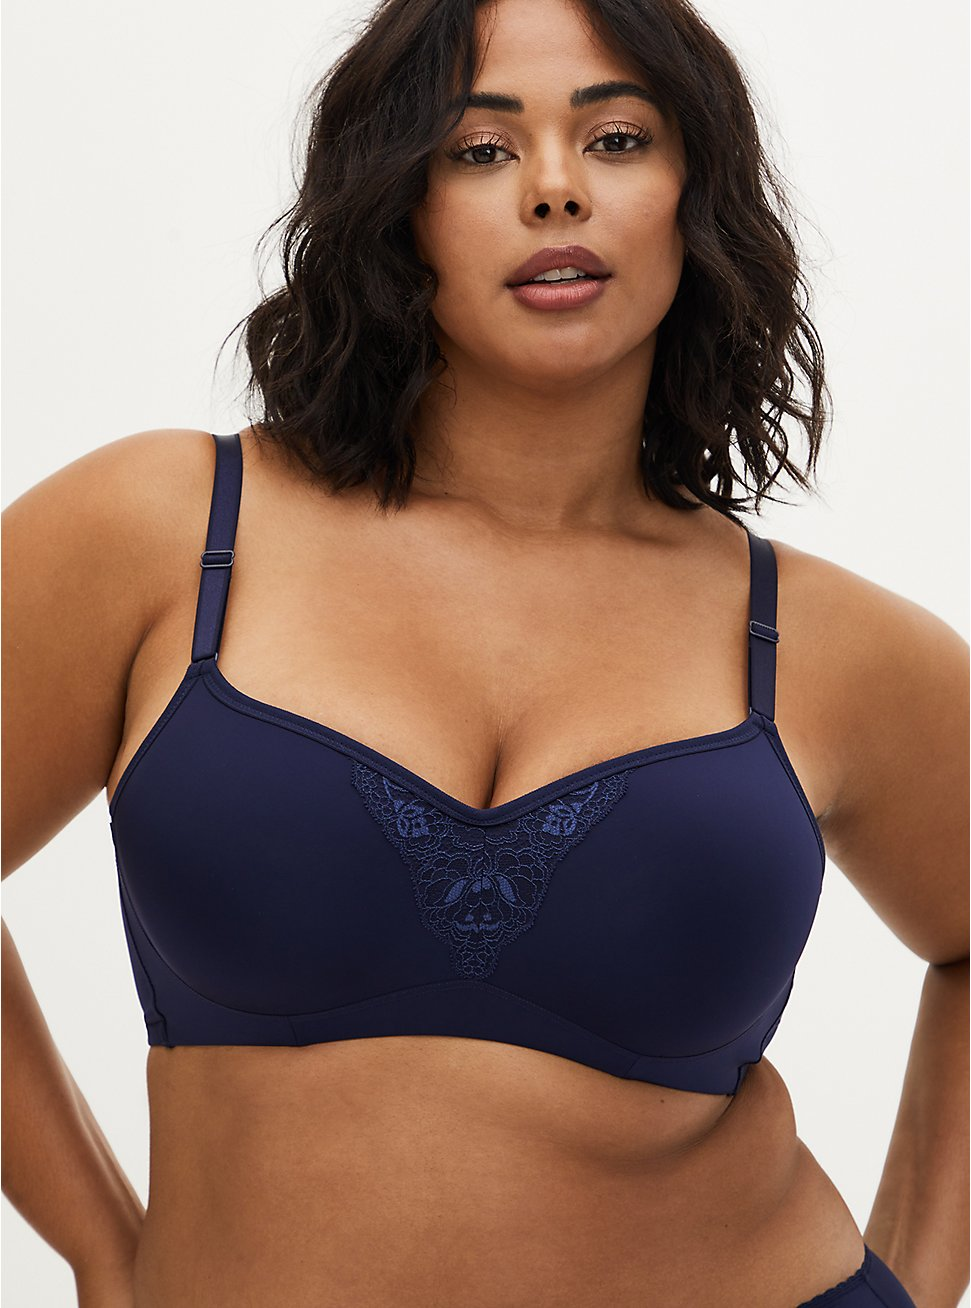 Navy Shine 360° Back Smoothing™ Lightly Lined Maximum Support Full Coverage Bra, PEACOAT, hi-res